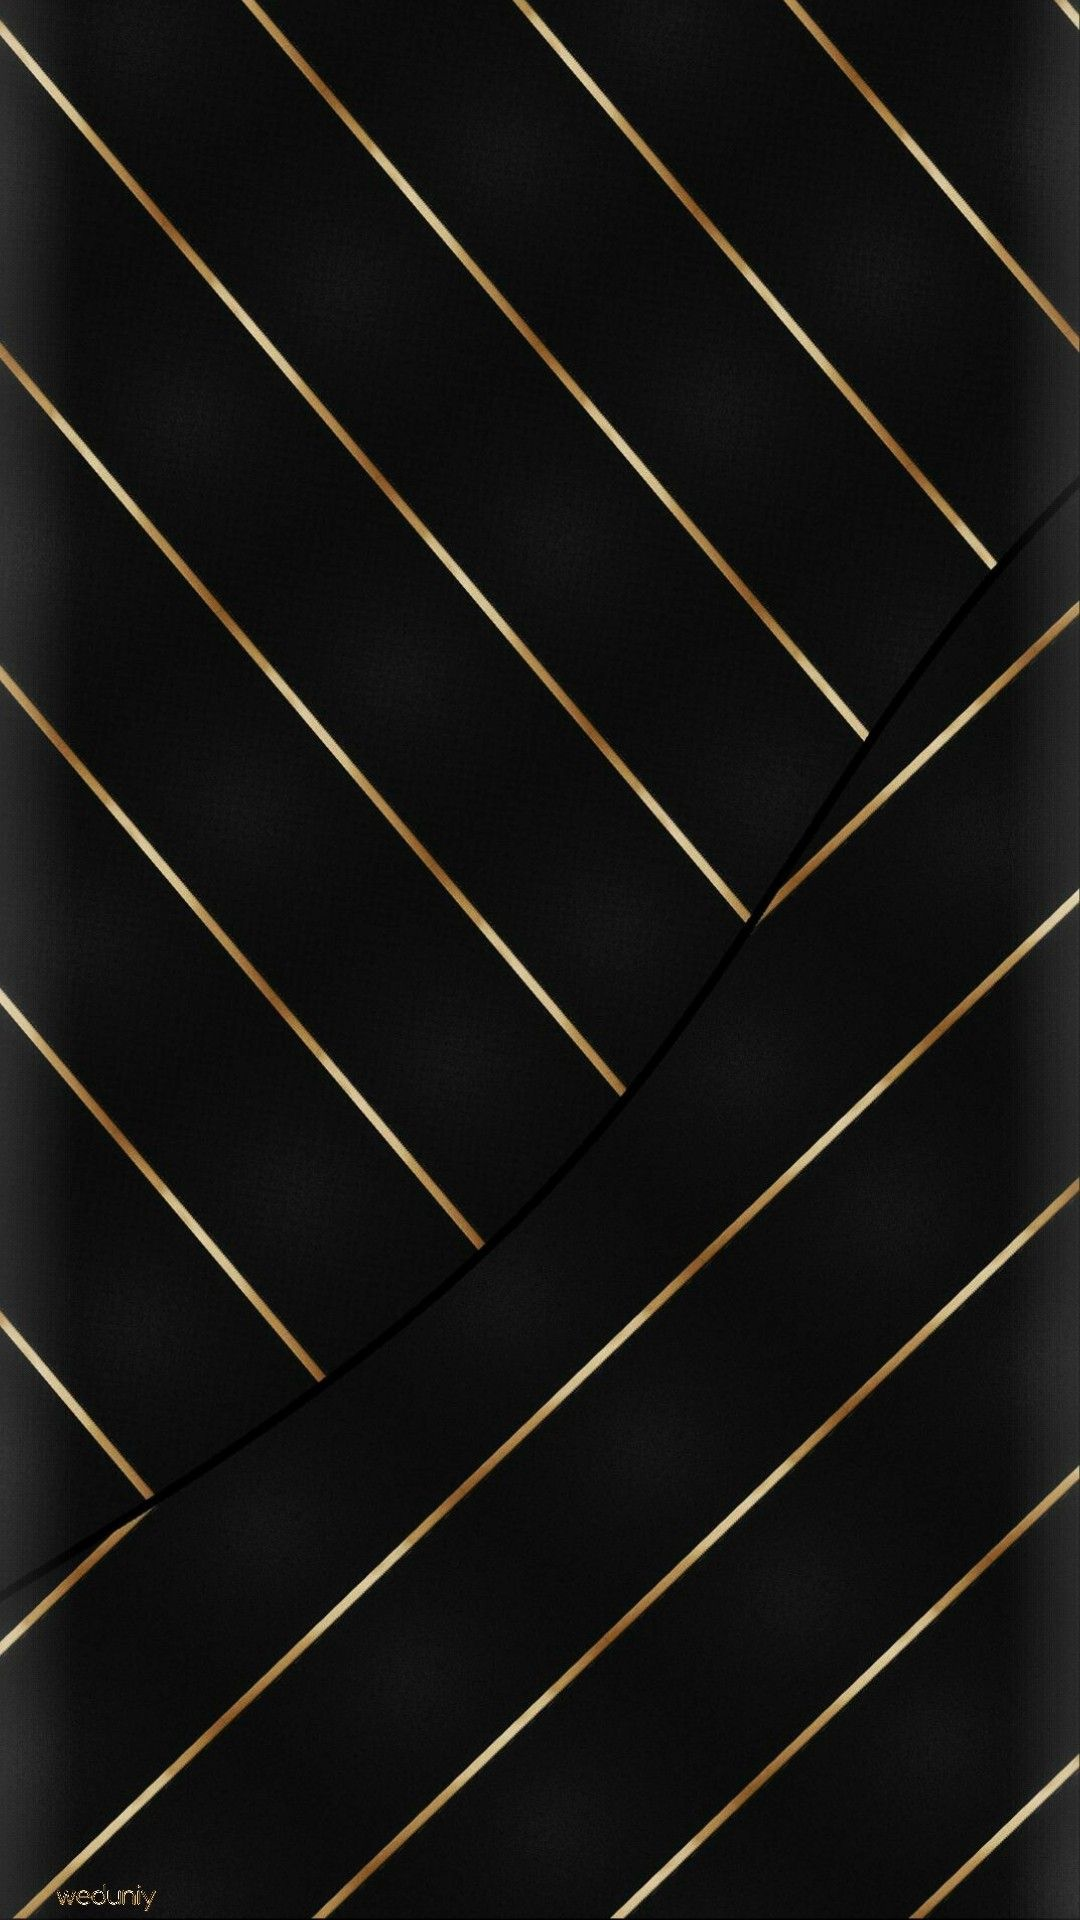 Pin By Umut On Wallpapersbabe Gold Luxury Wallpaper Geometric